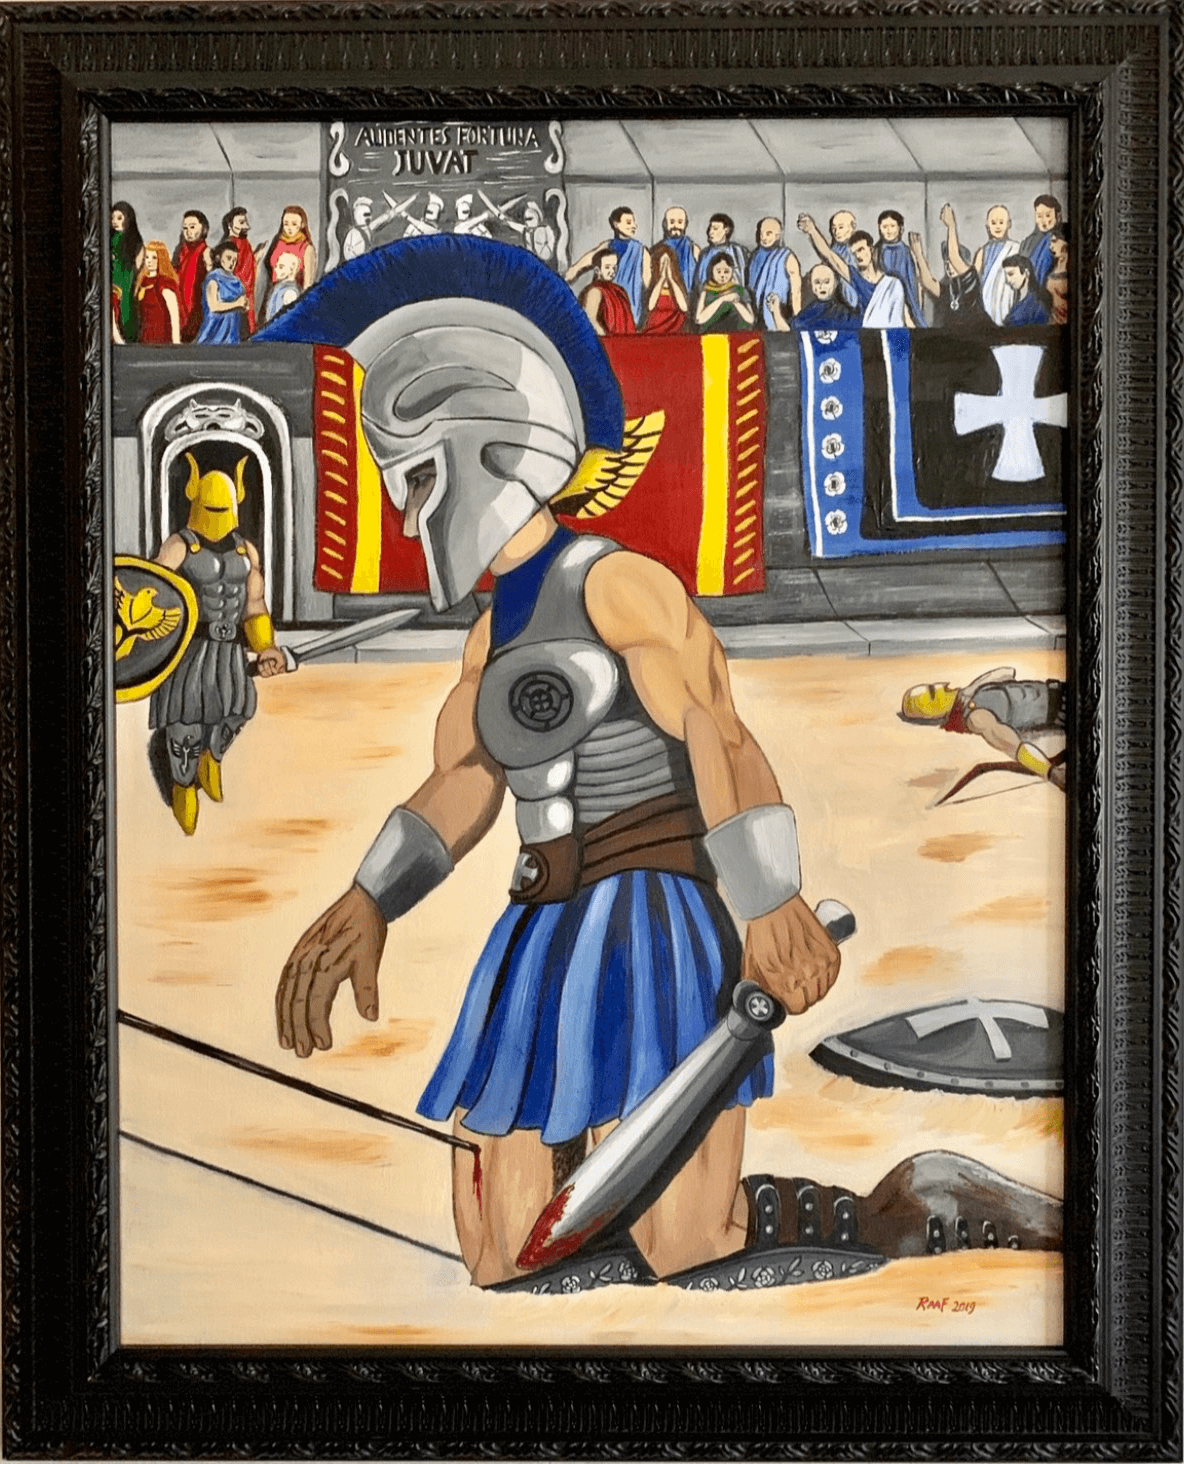 Gladiator-by-raafpaintings